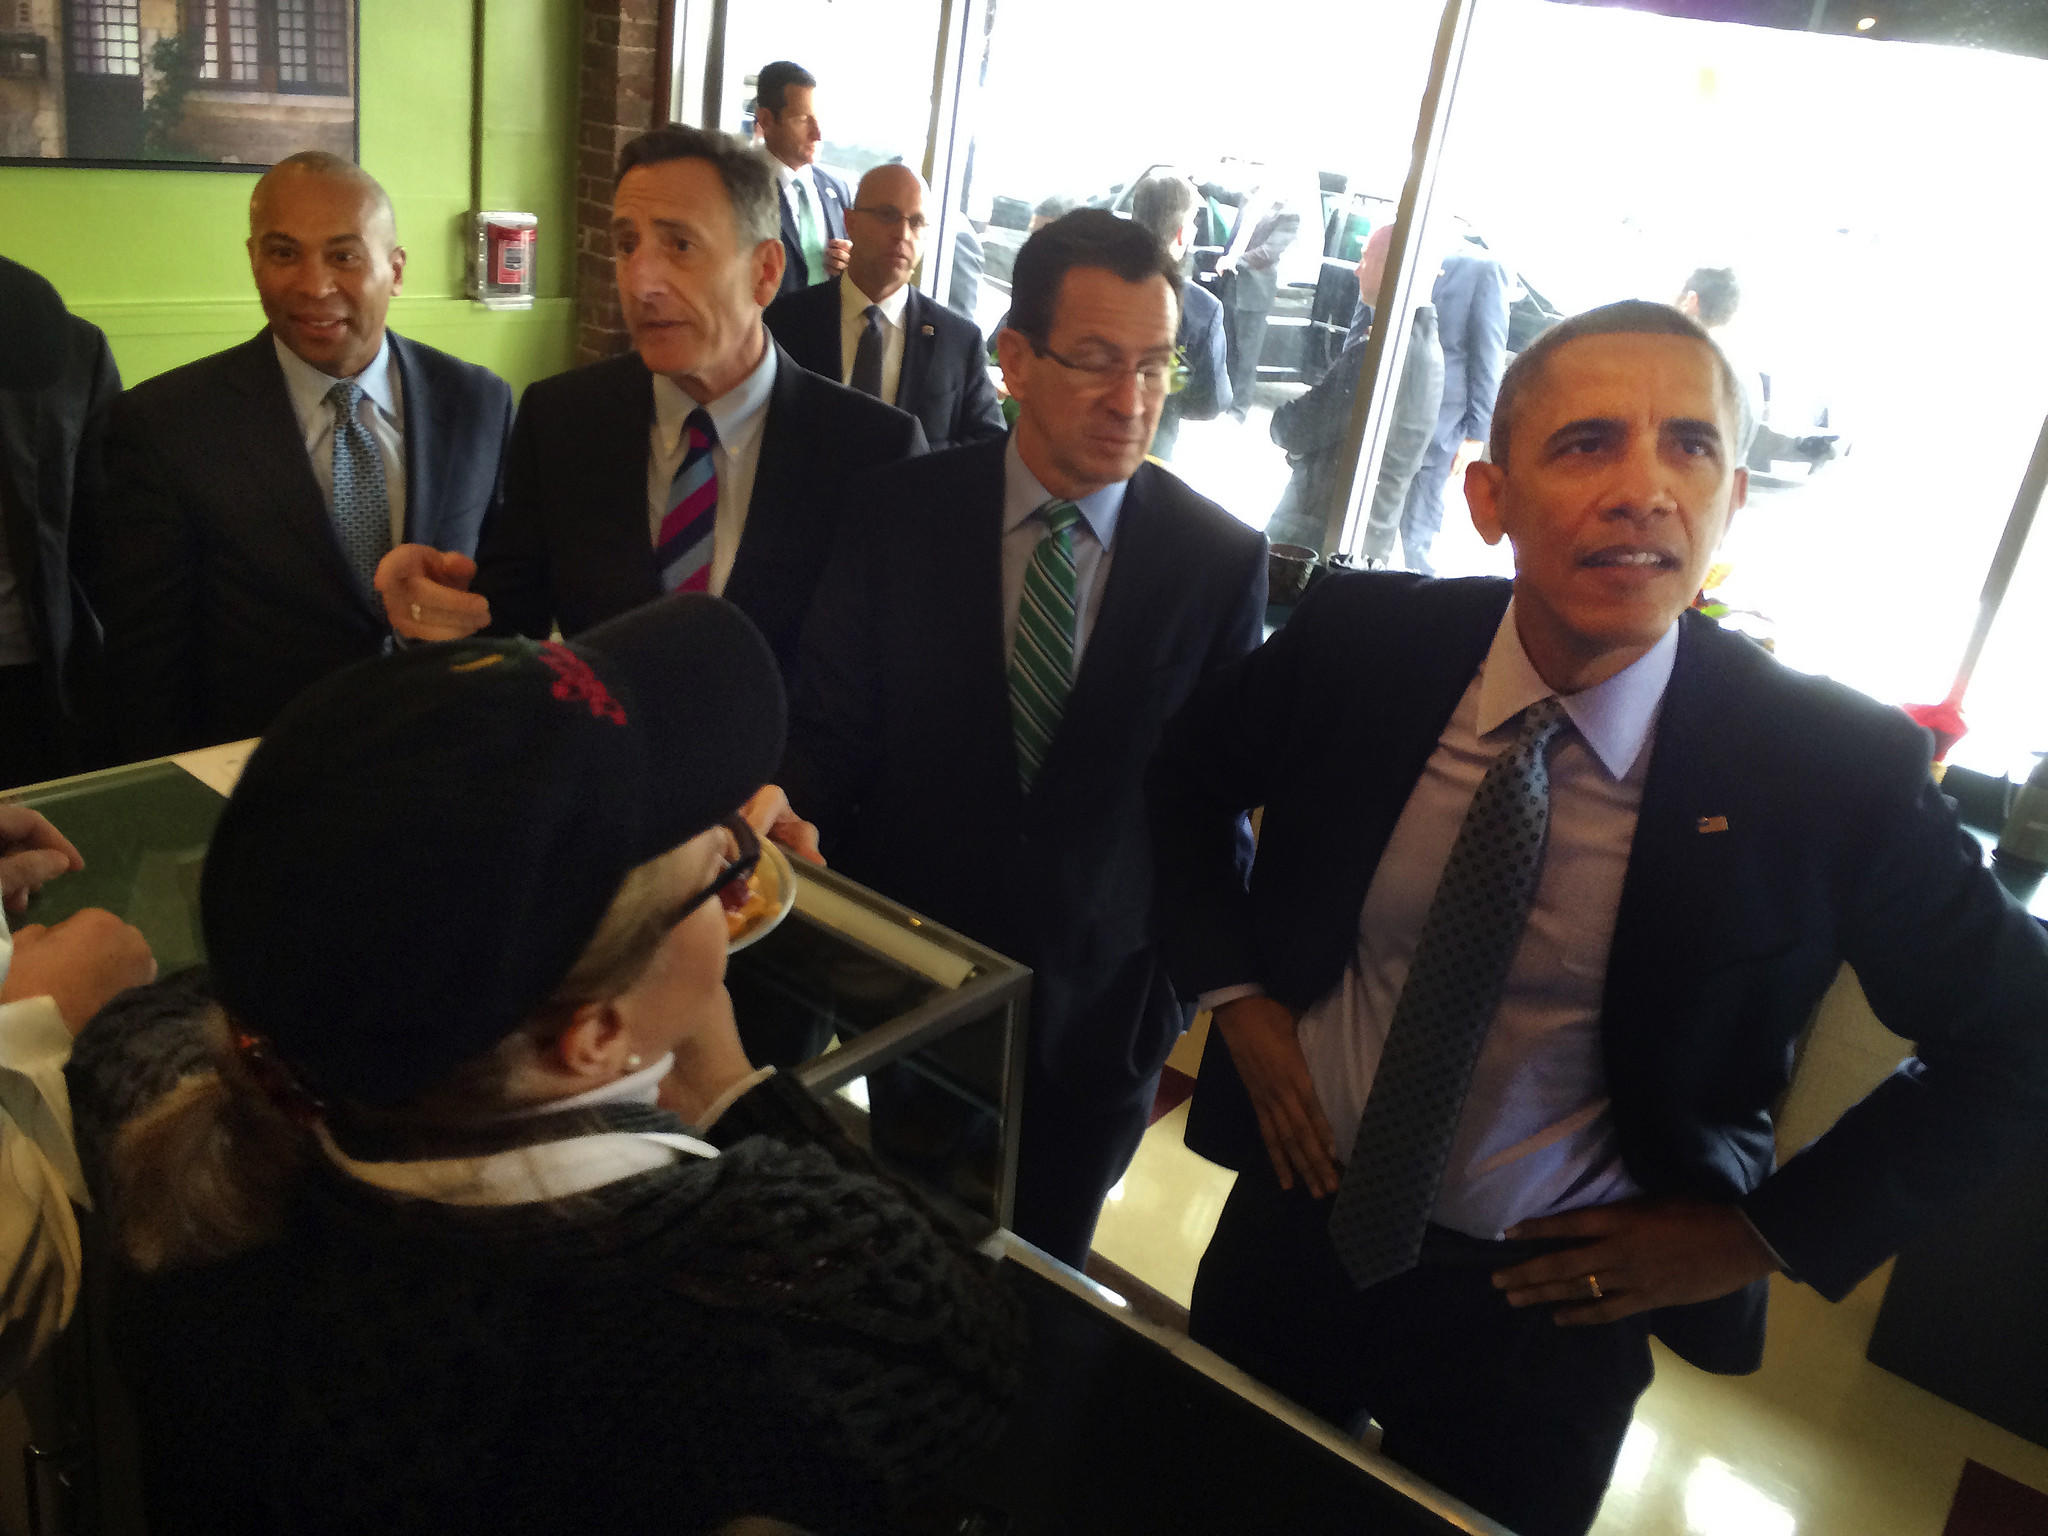 President Barack Obama, accompanied by Massachusetts Gov. Deval Patrick, Vermont Gov. Peter Shumlin and Gov. Dannel P. Malloy, looks to order lunch Wednesday at Cafe Beauregard in New Britain.